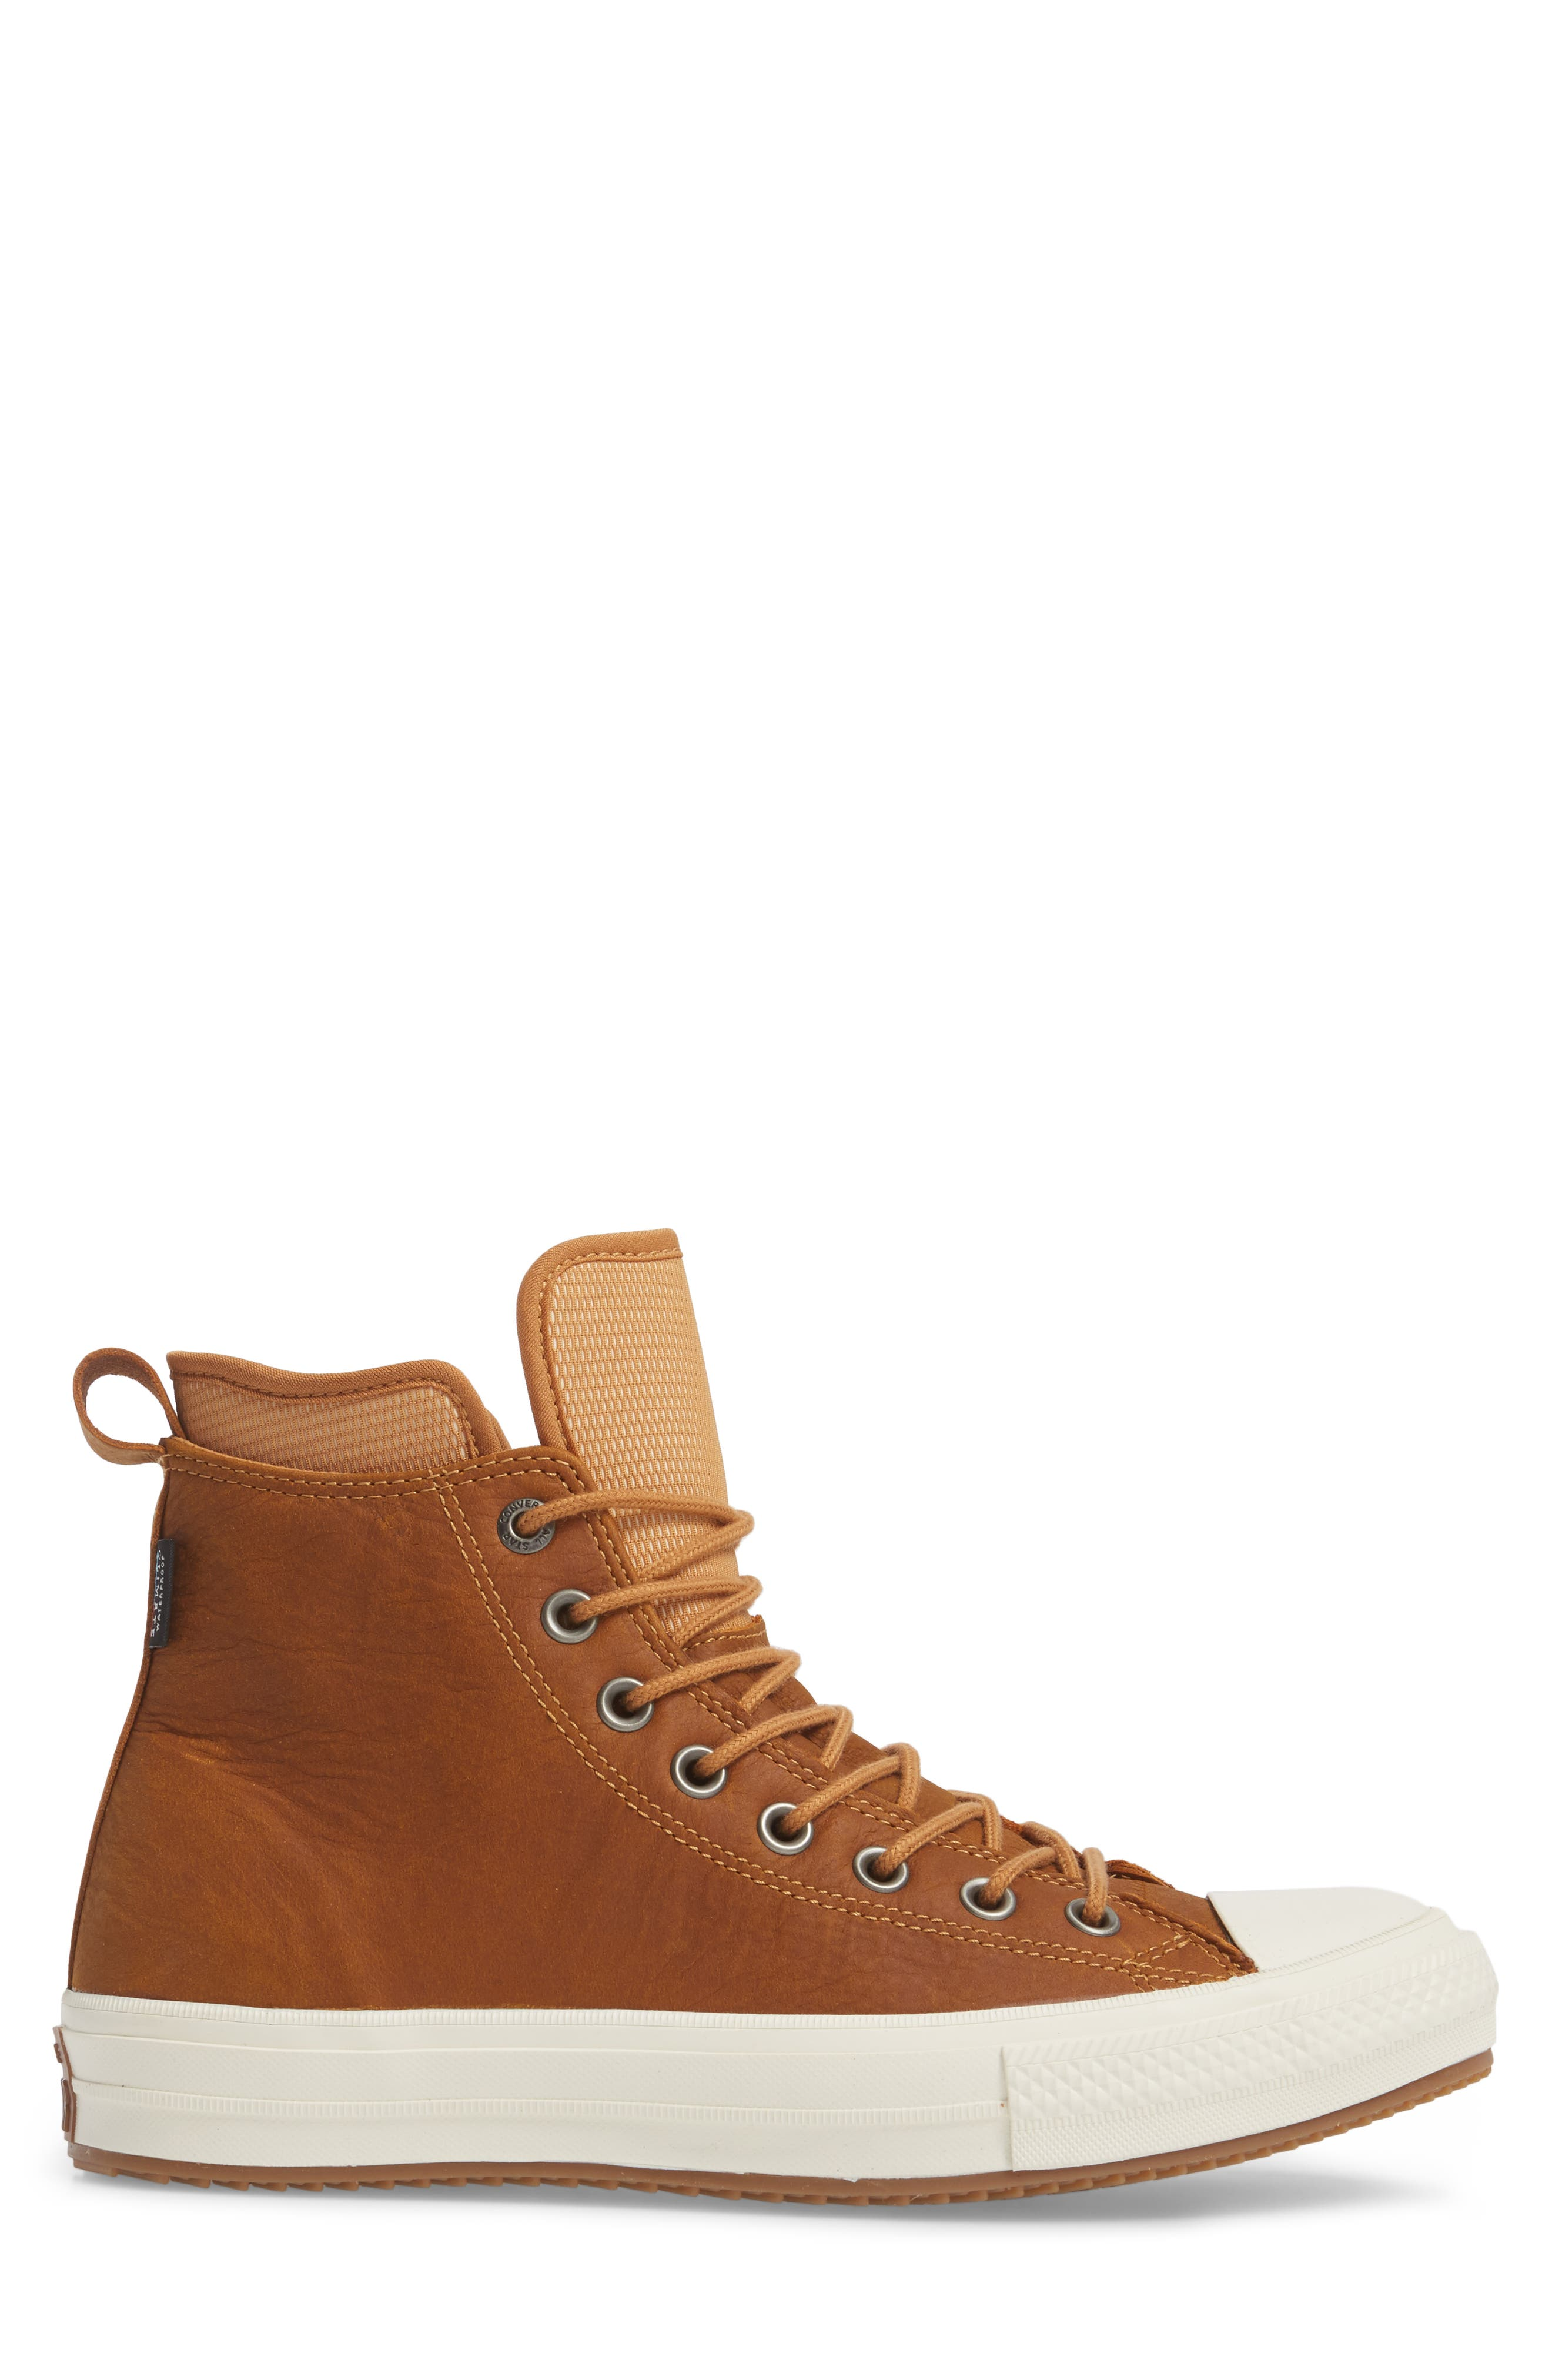 Chuck Taylor<sup>®</sup> All Star<sup>®</sup> Waterproof Sneaker,                             Alternate thumbnail 3, color,                             237